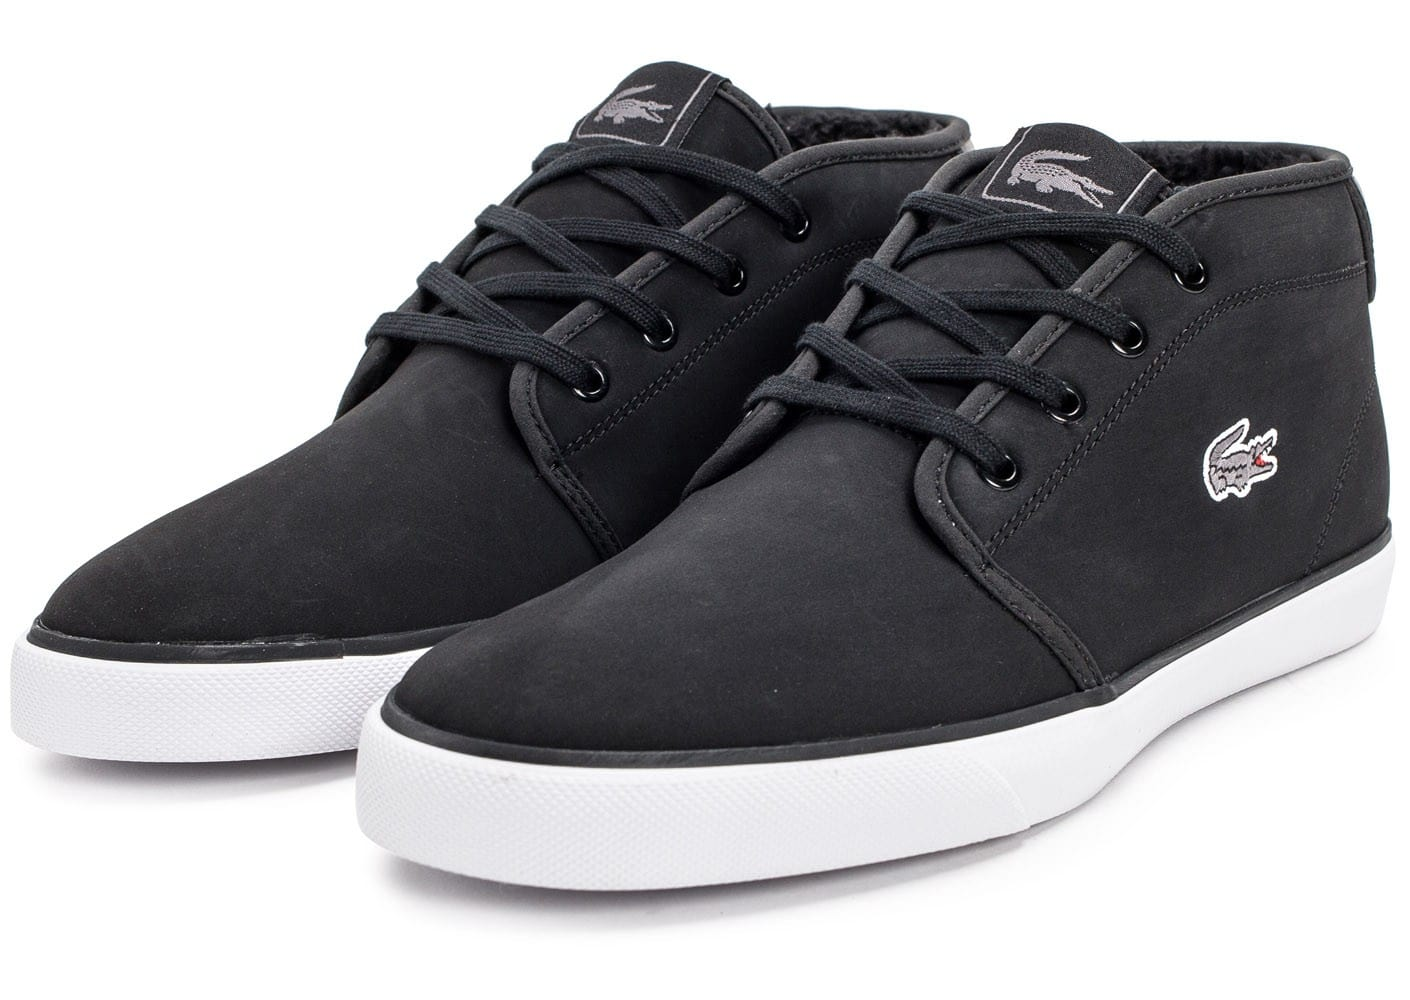 Lacoste Baskets Chaussures Ampthill Noire Homme Chausport vmnOwyNP80